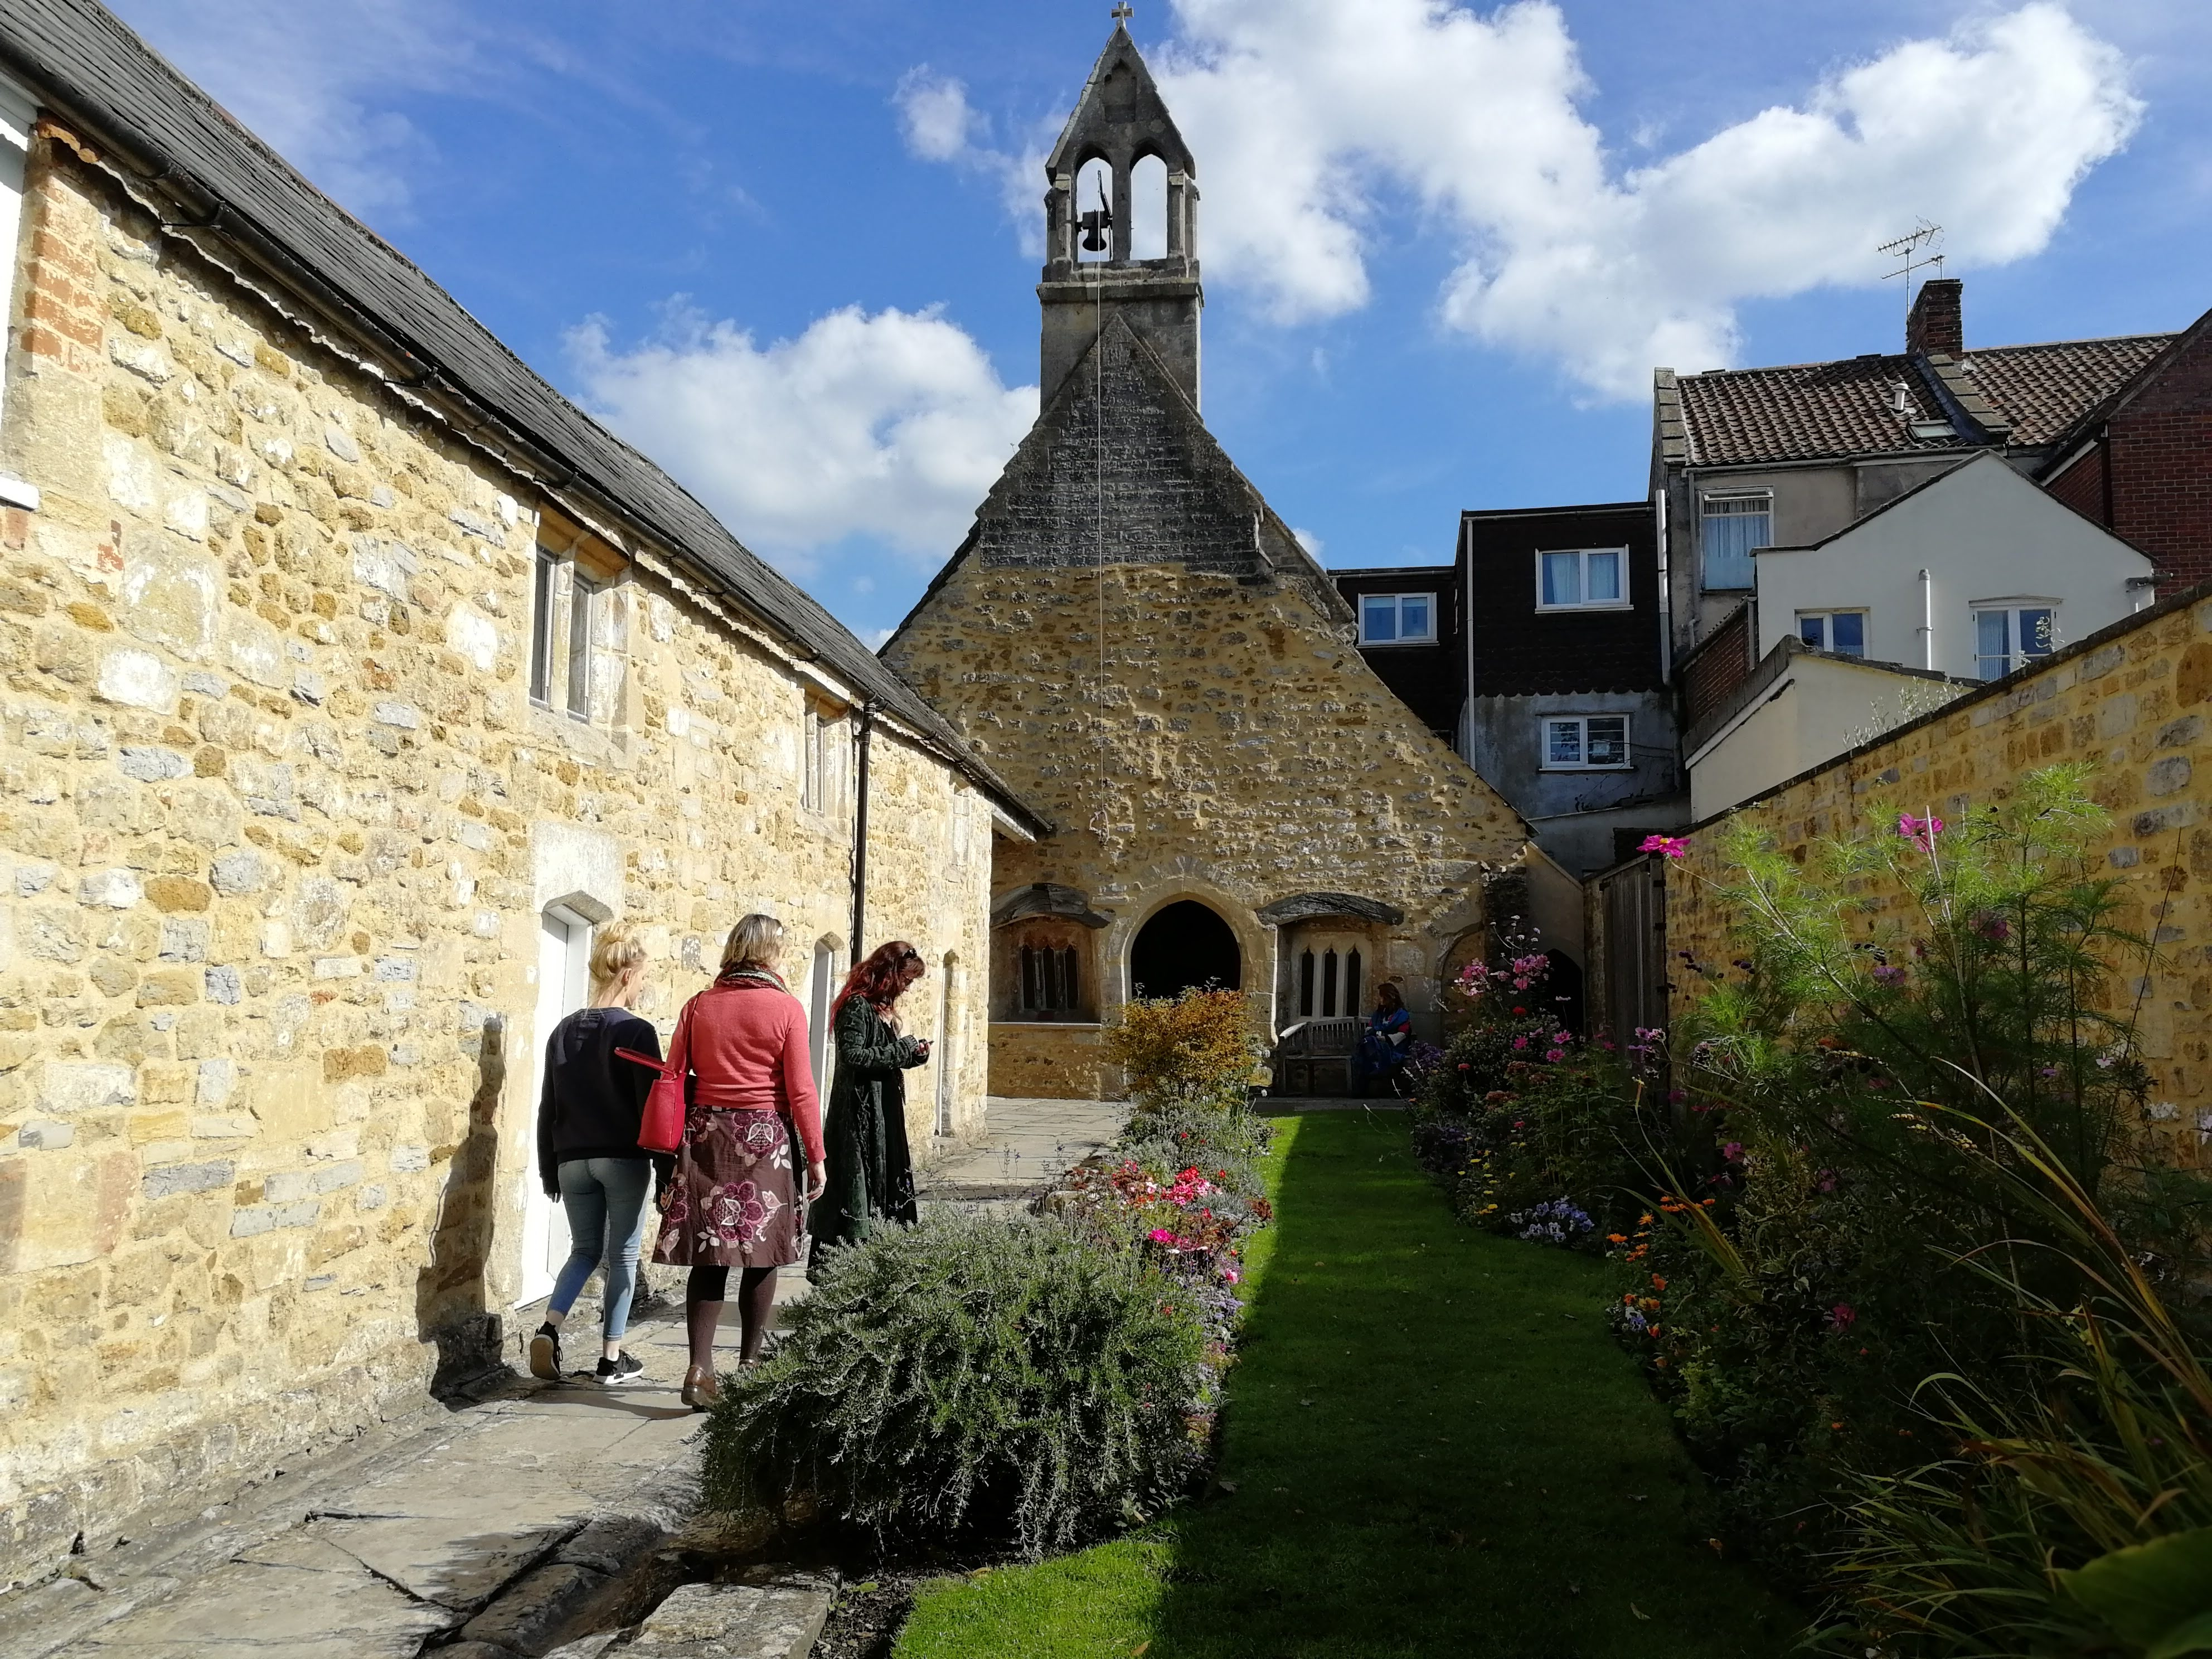 Calling All Artists for Art in the Almshouses 2019